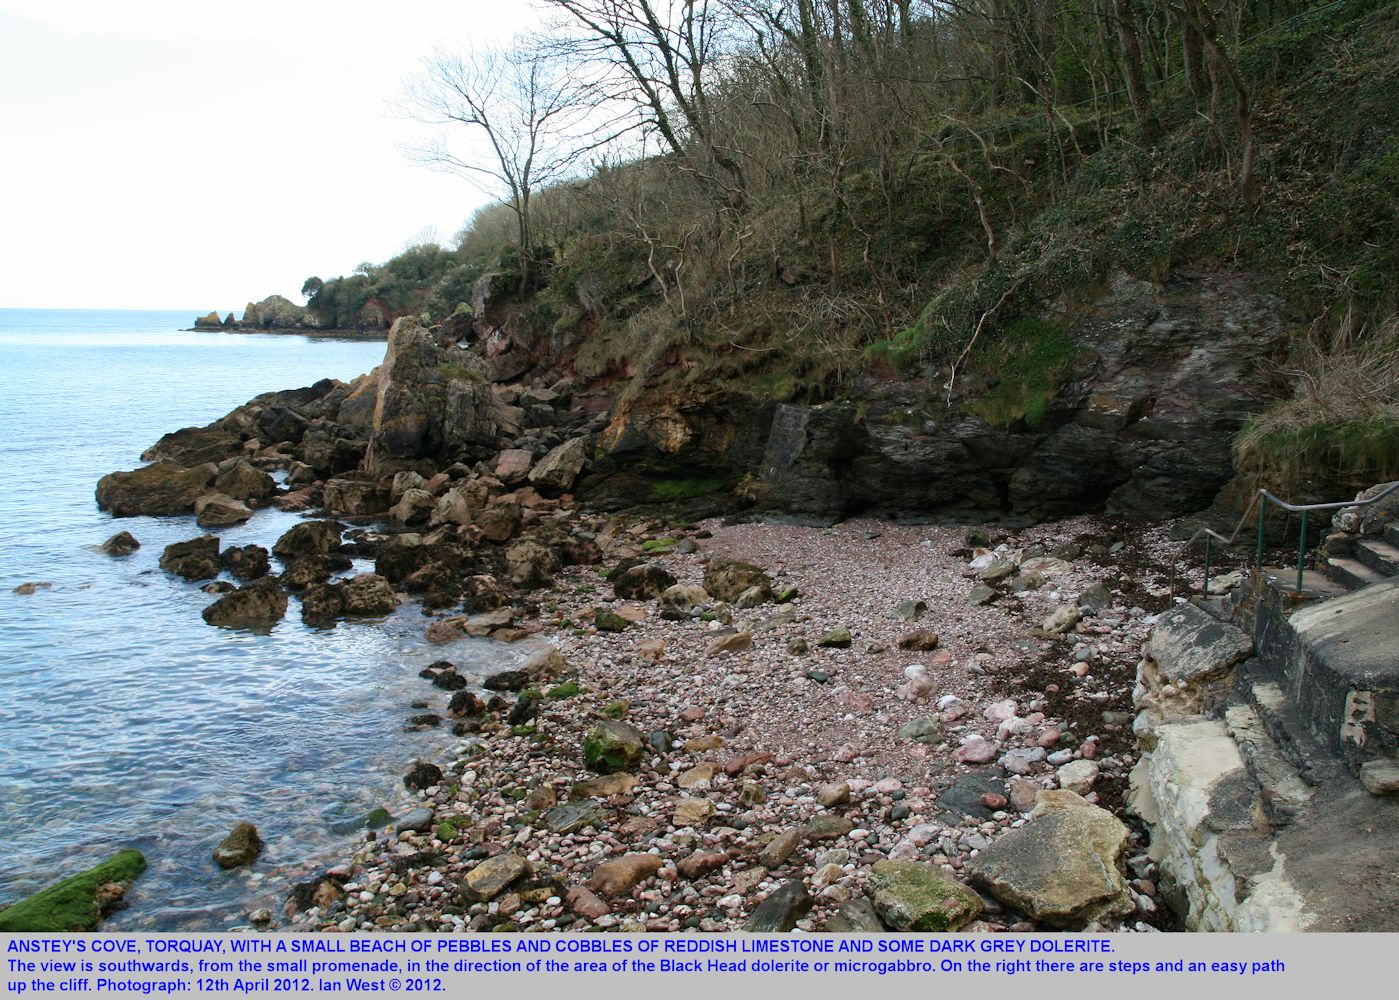 The small beach at Anstey's Cove, Torquay, Devon, April 2012